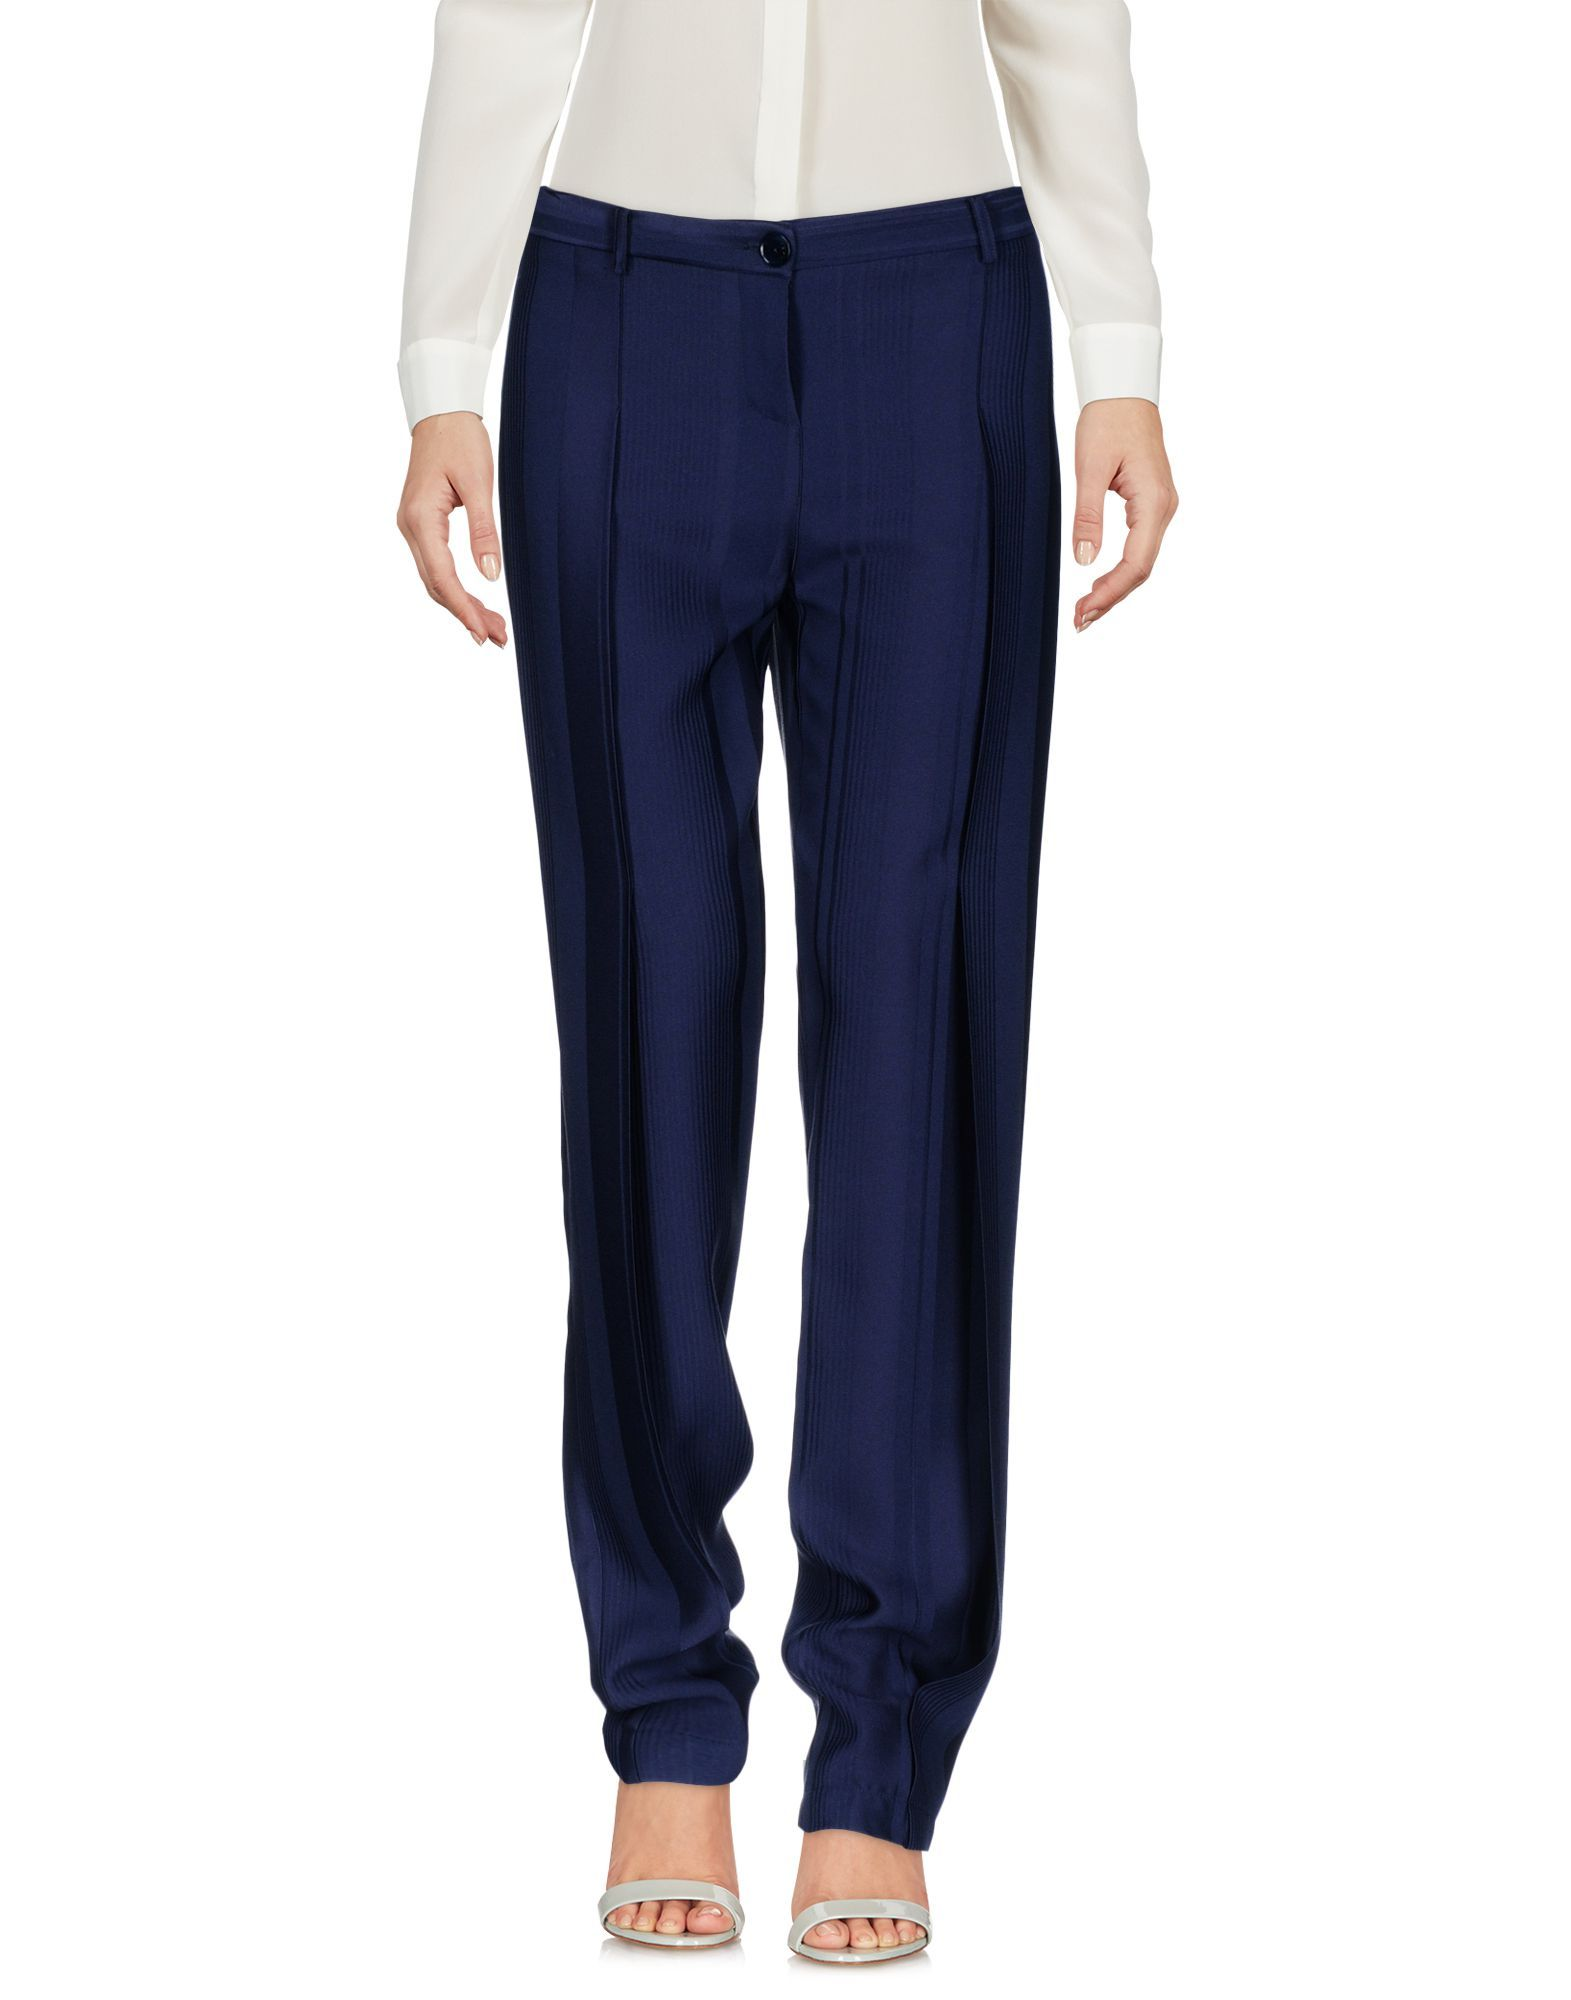 Patrizia Pepe Dark Blue Crepe Straight Leg Tailored Trousers